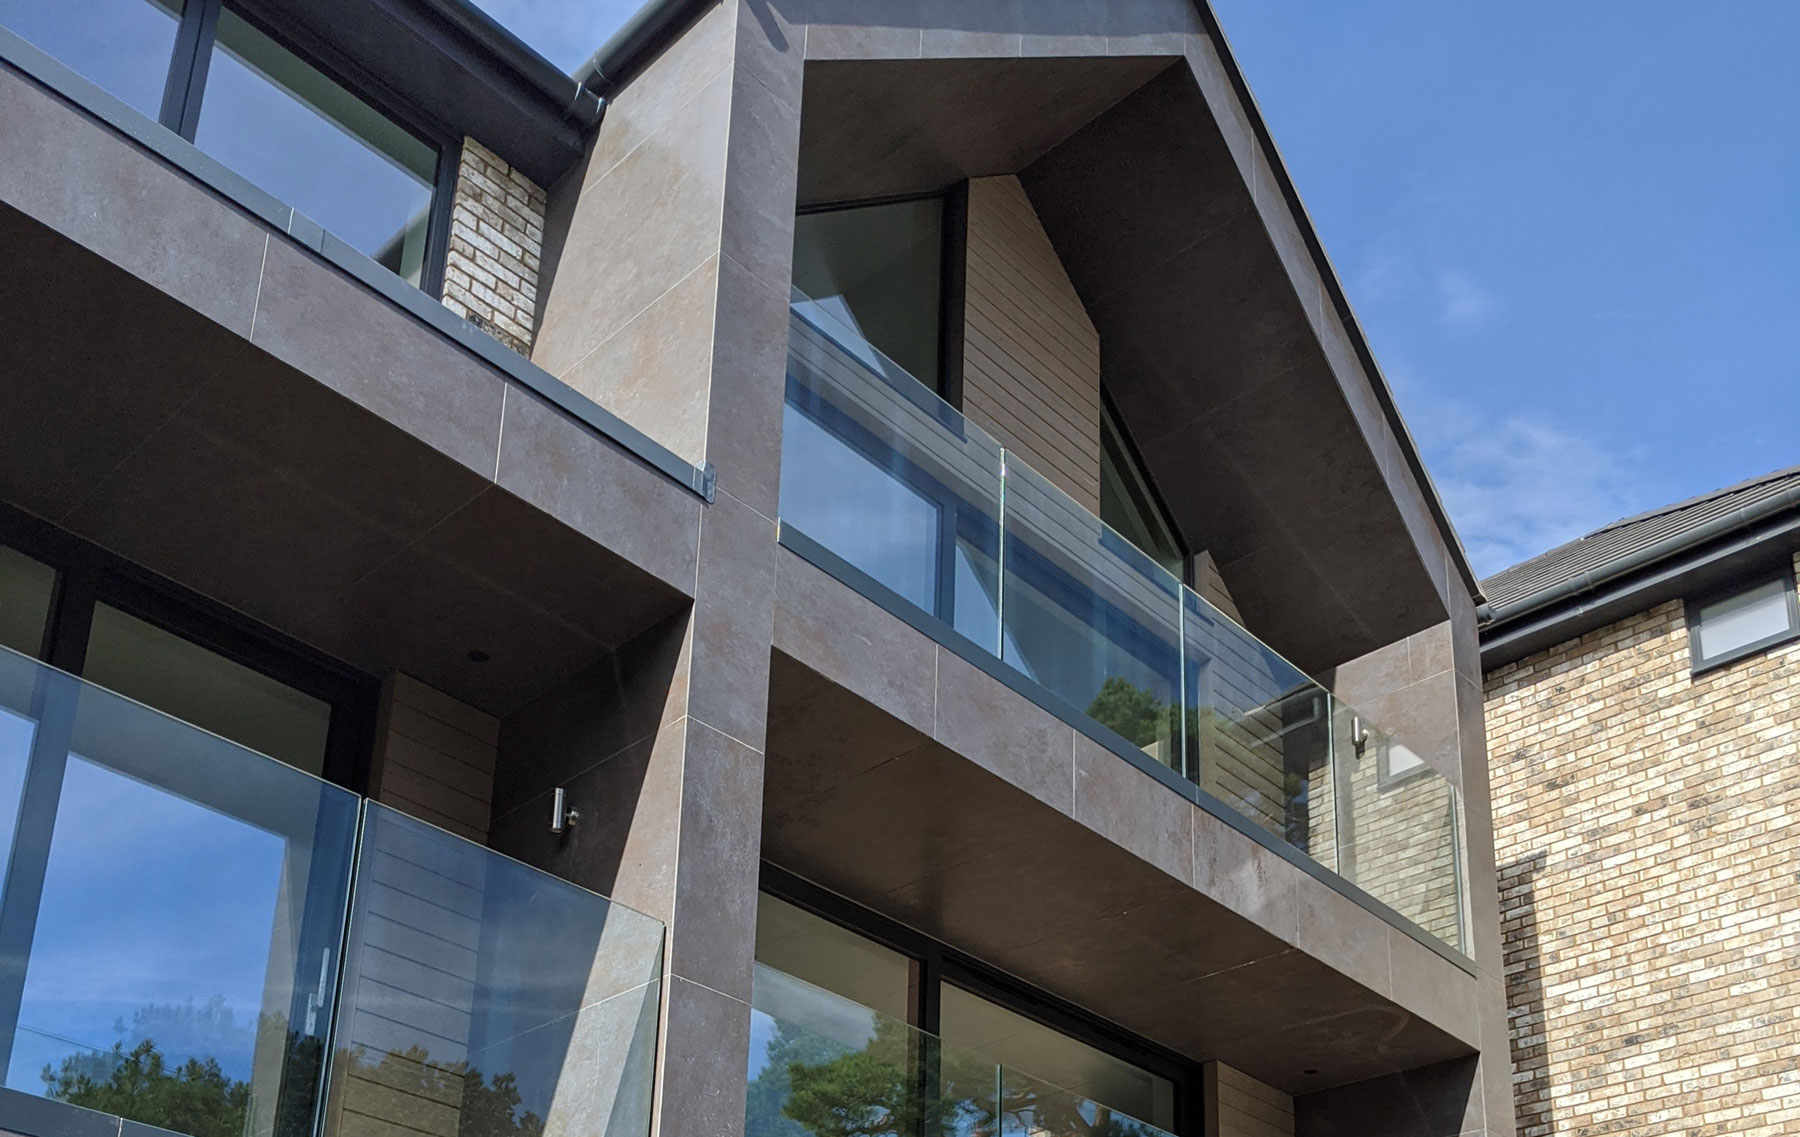 Glass balustrades on new build house in Dorset